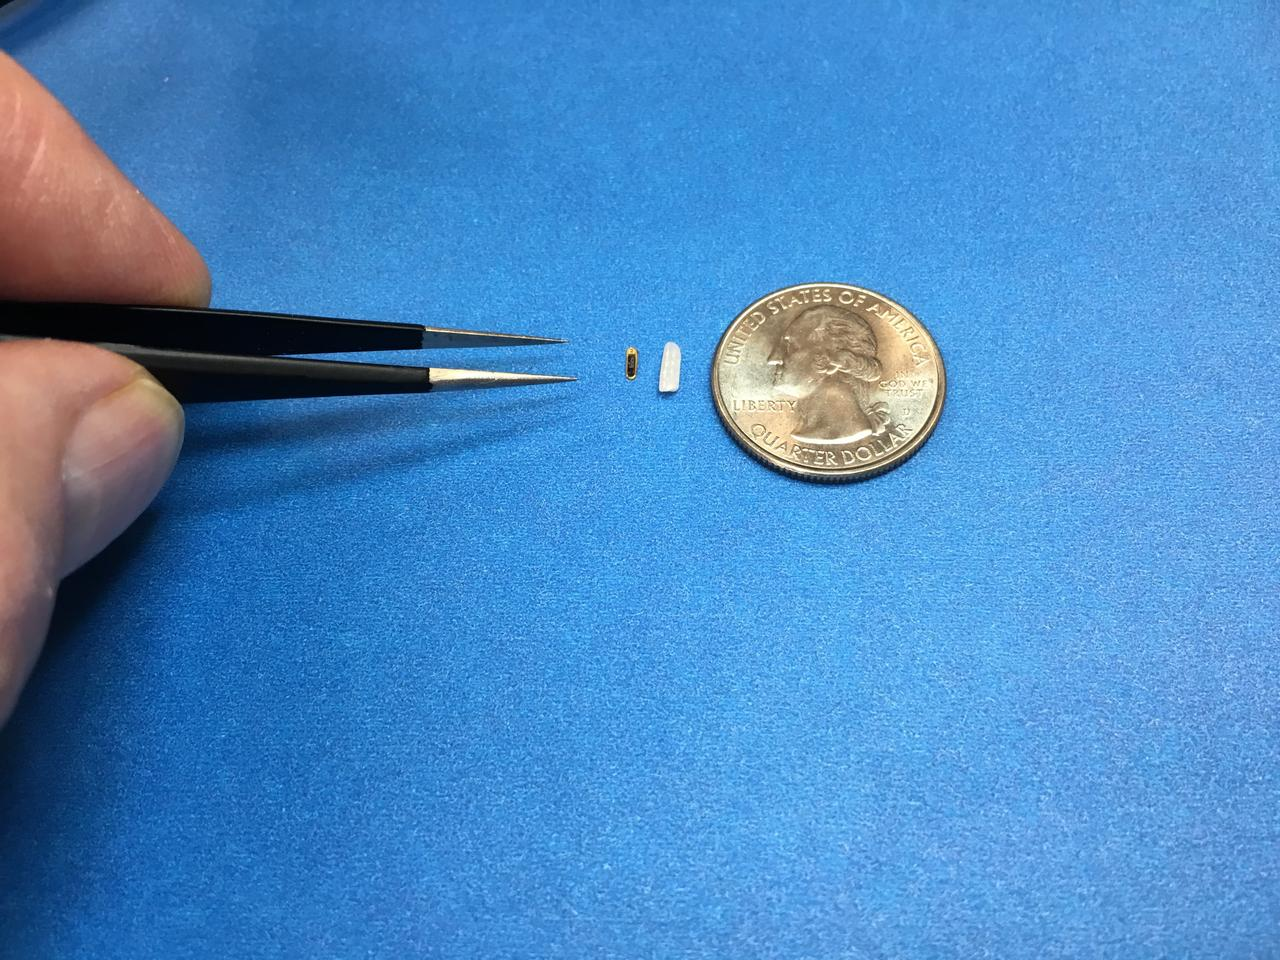 The implant, made by California-based firm Injectsense, with a grain of rice and a US quarter for scale